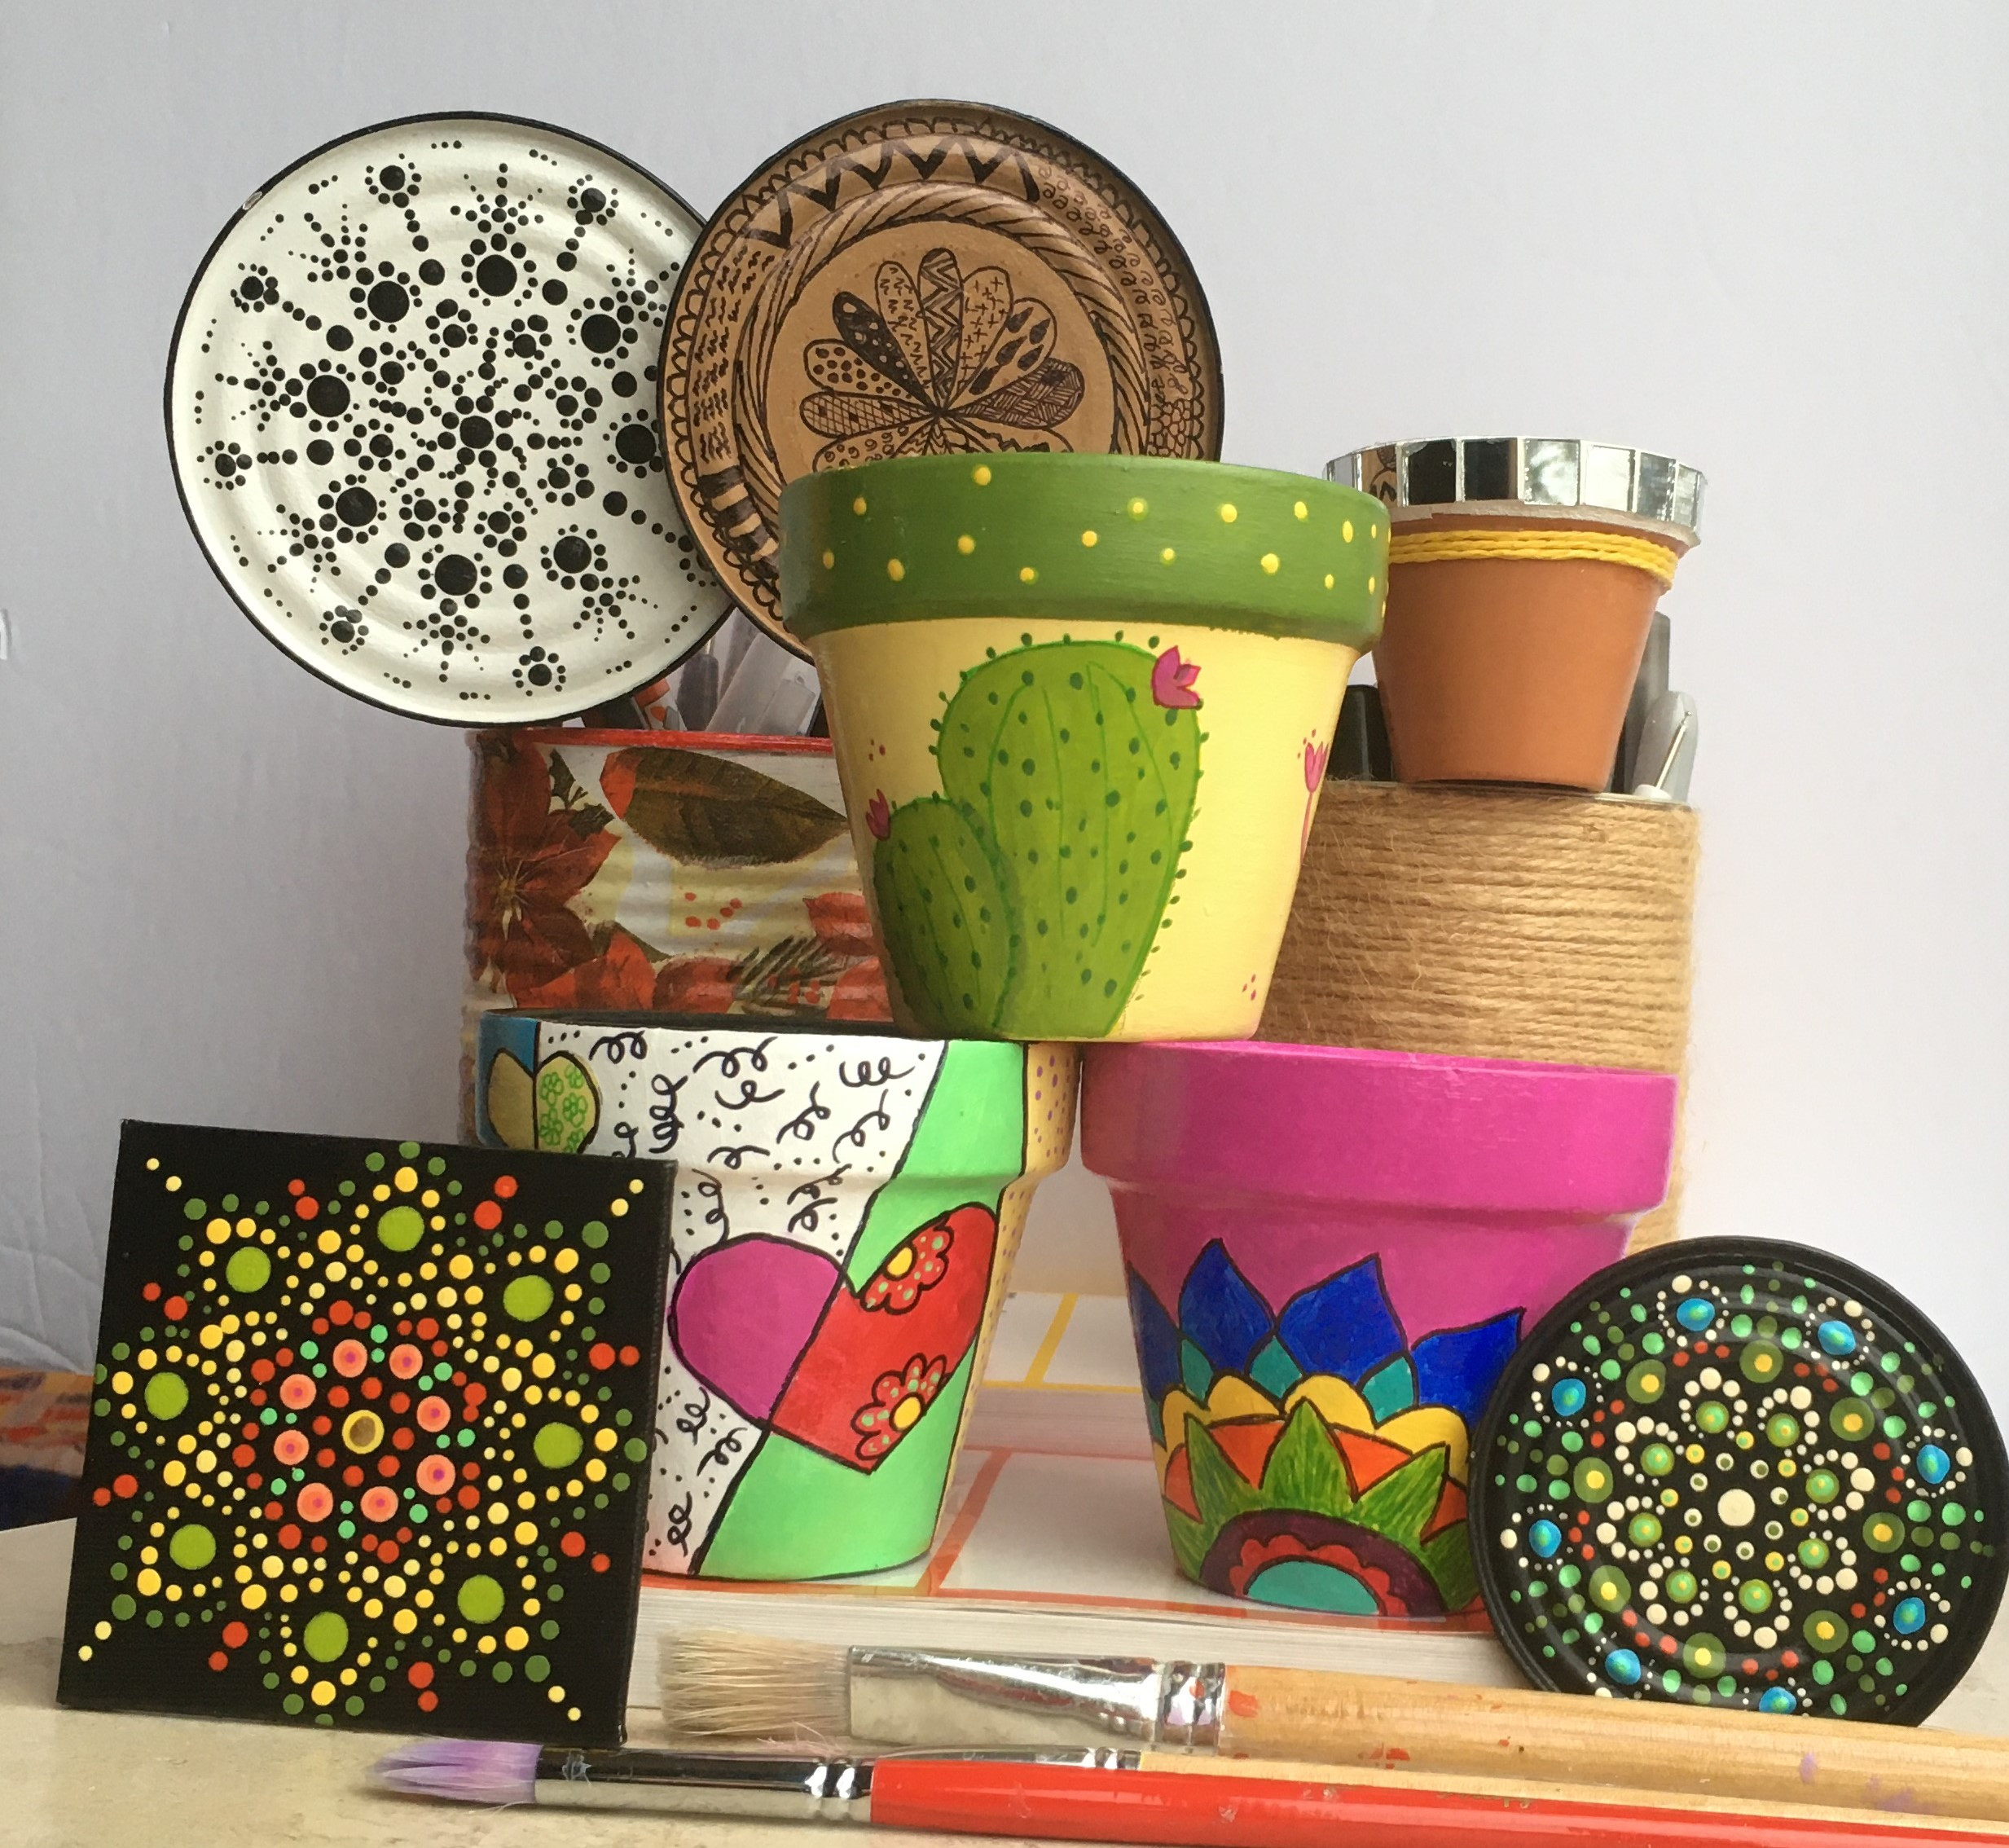 Craft and Upcycling Classes